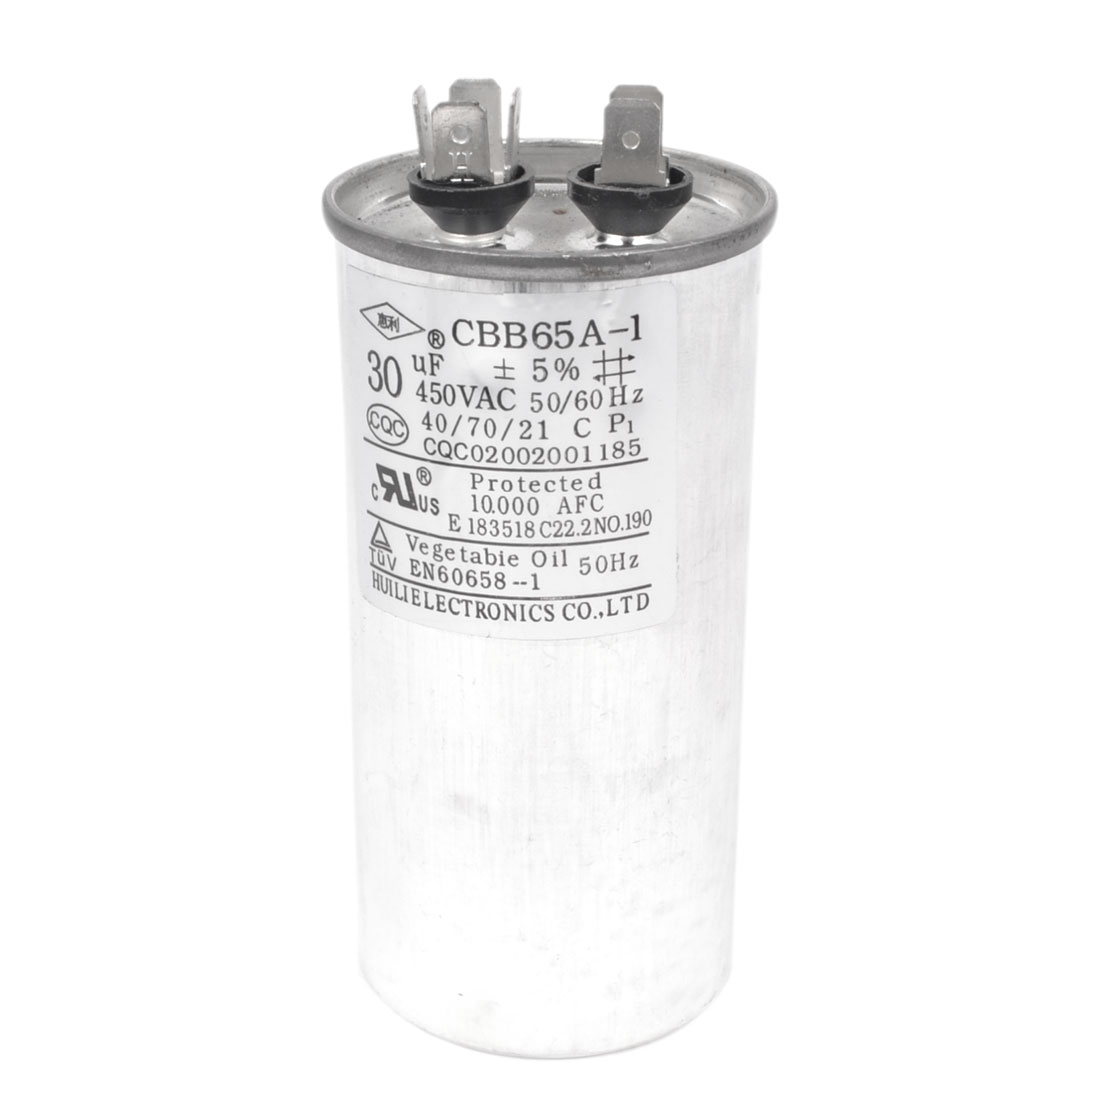 CBB65A-1 Non Polar Air Conditioner Motor Running Capacitor AC 450V 30uF